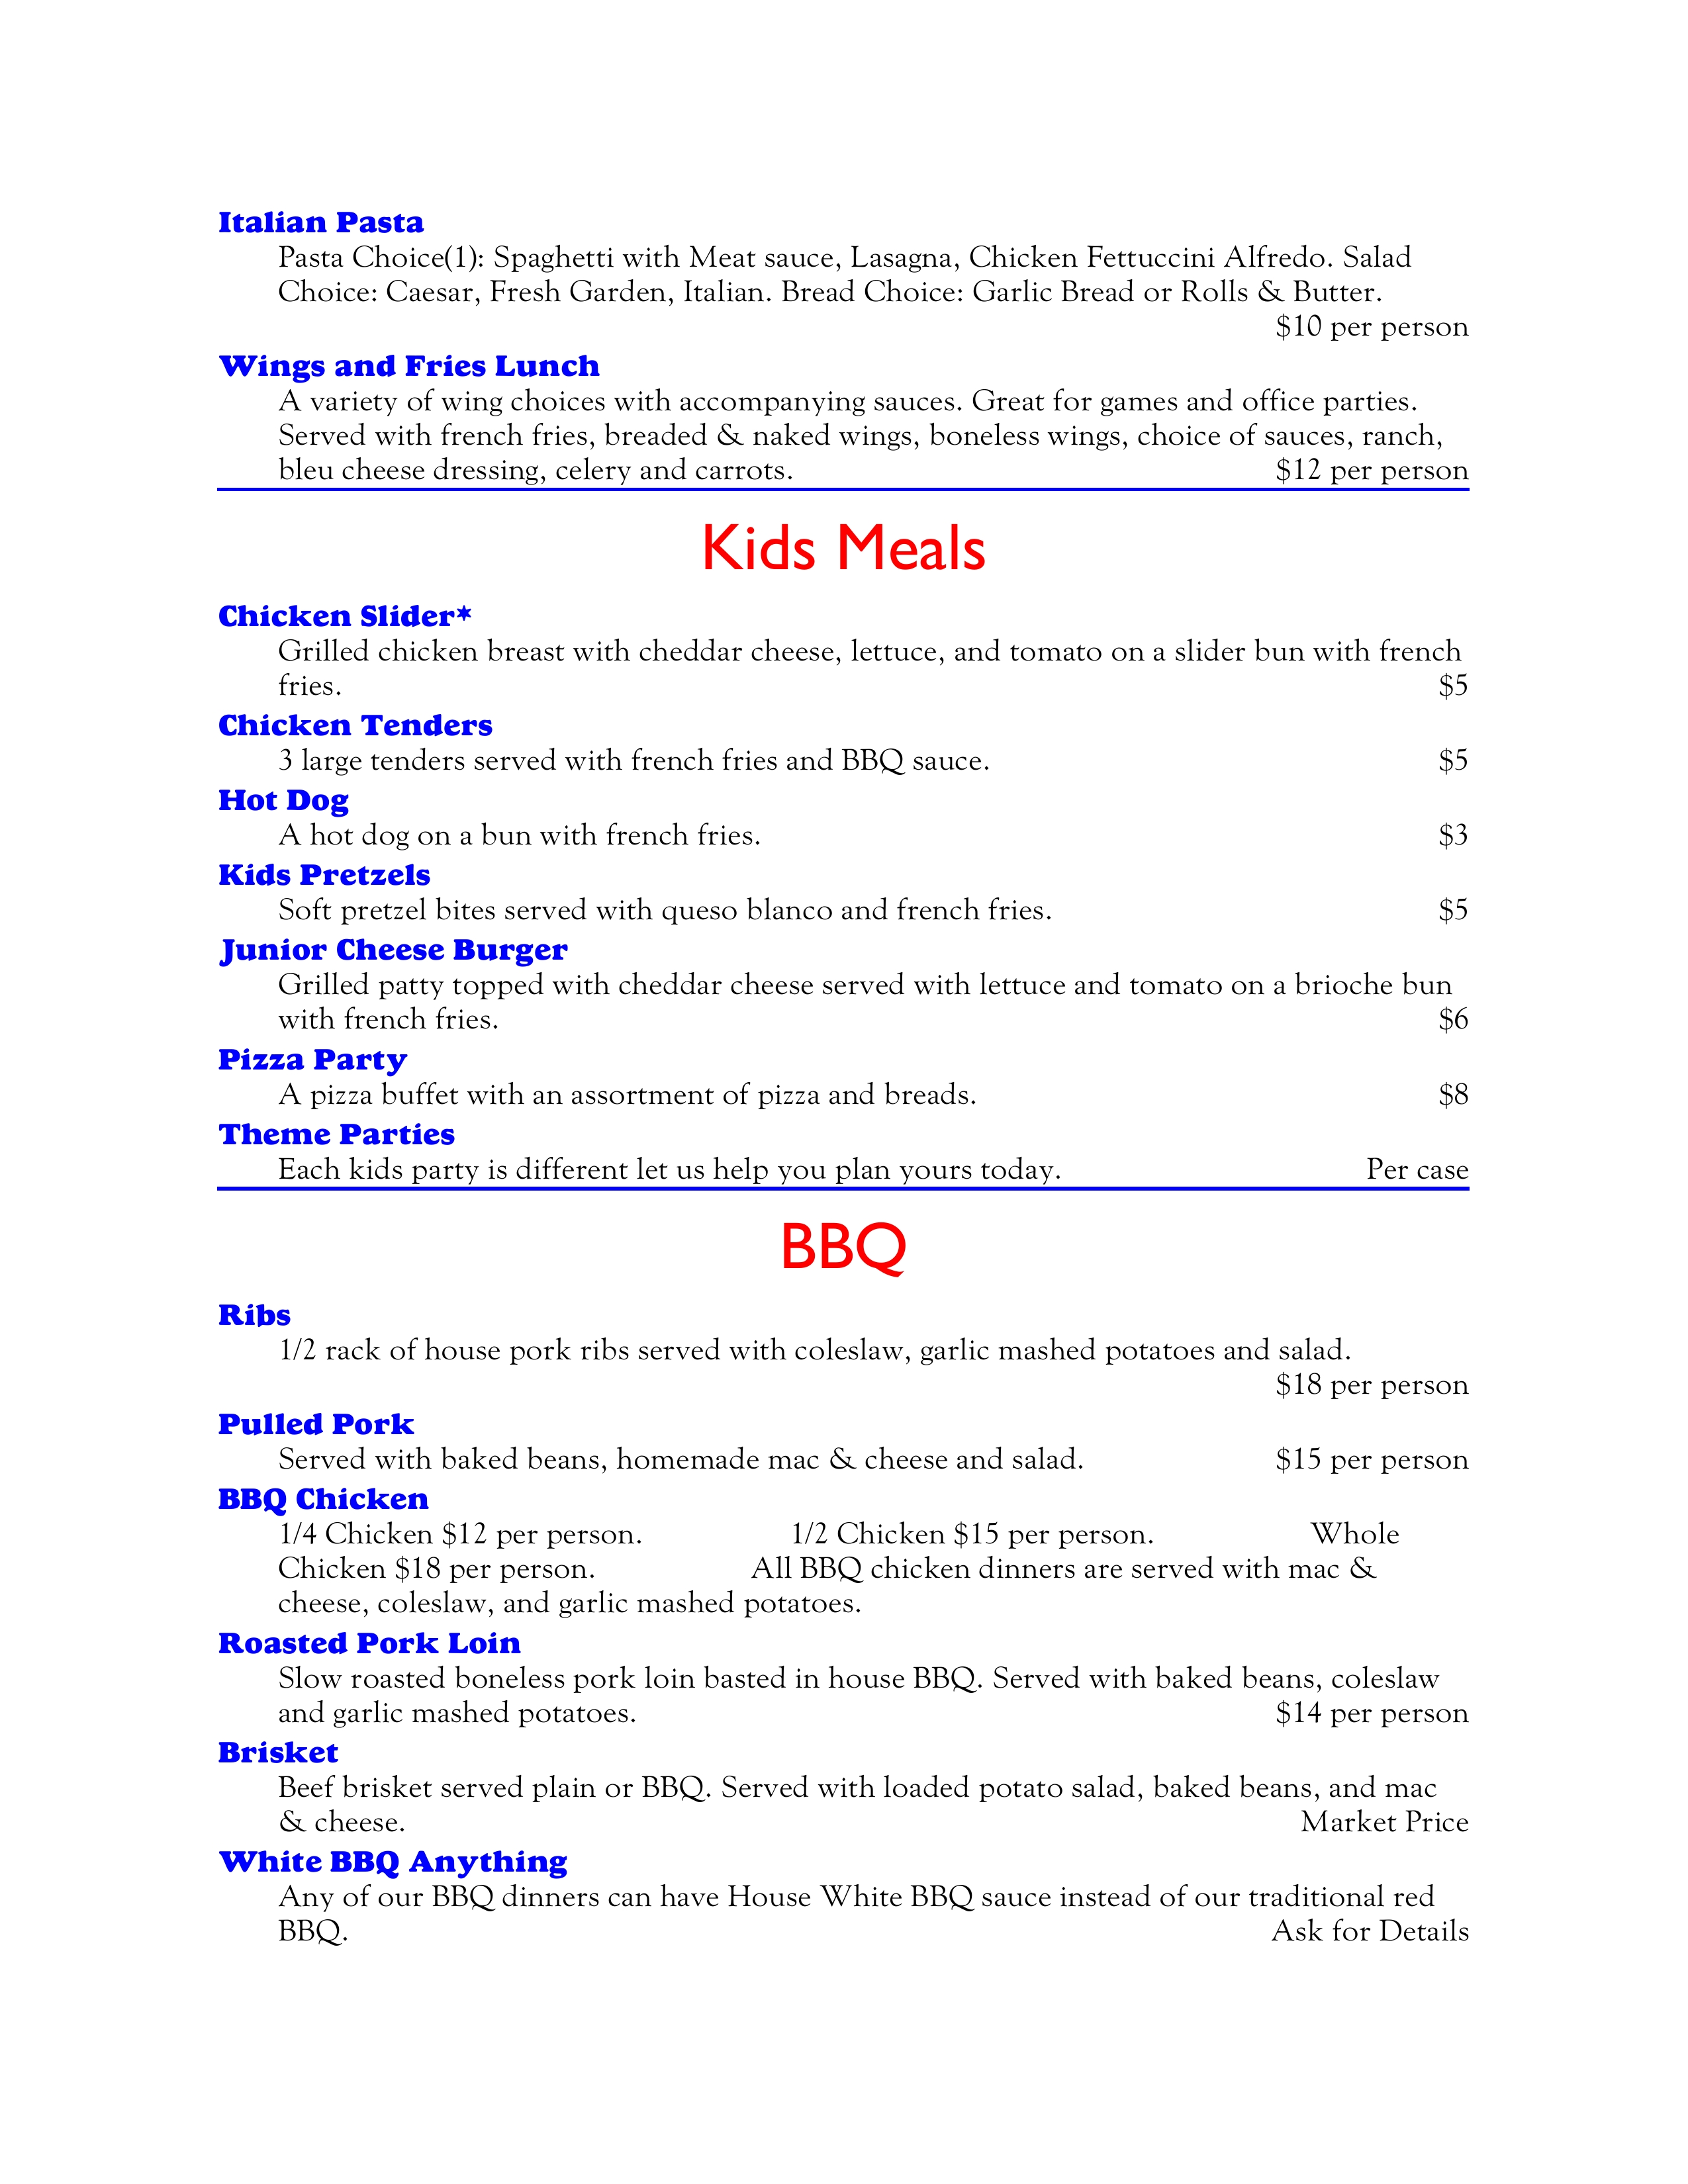 Banquet Lunches, Keds Meals, BBQ 4